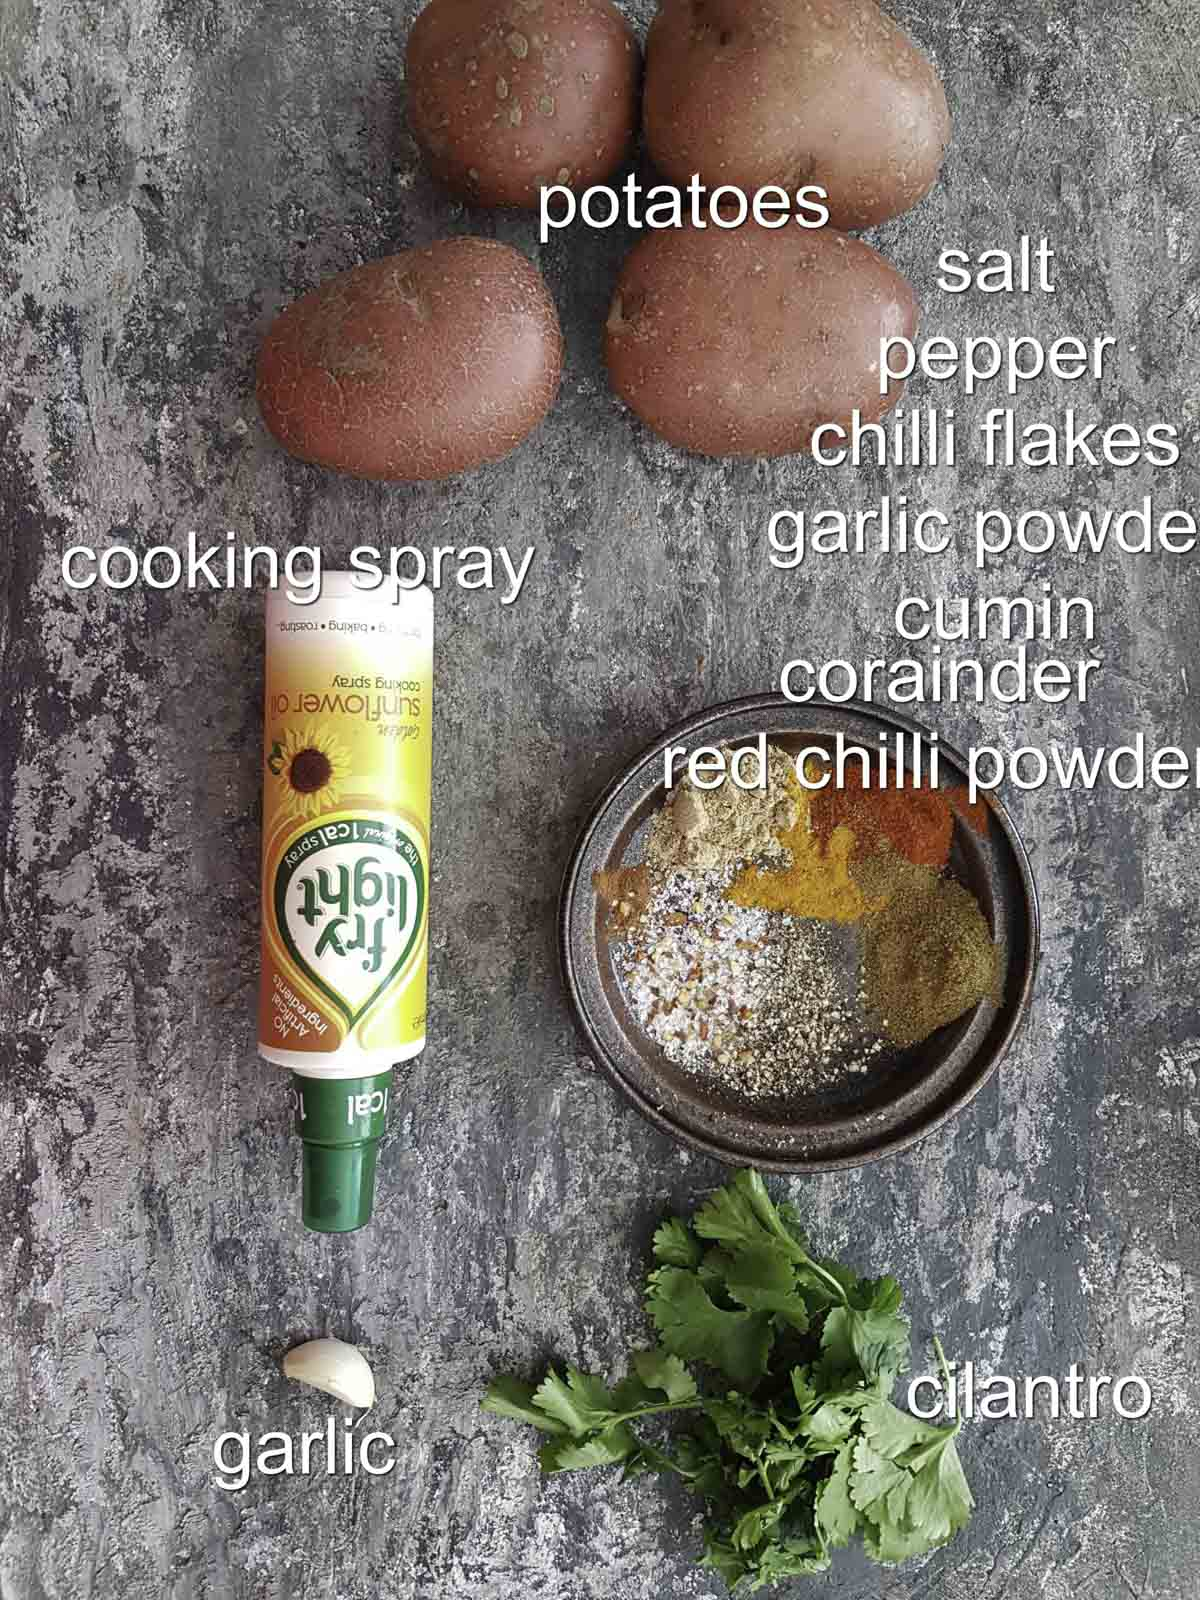 ingredients for Moroccan roasted potatoes recipe, potatoes, spices, garlic, cooking spray, cilantro